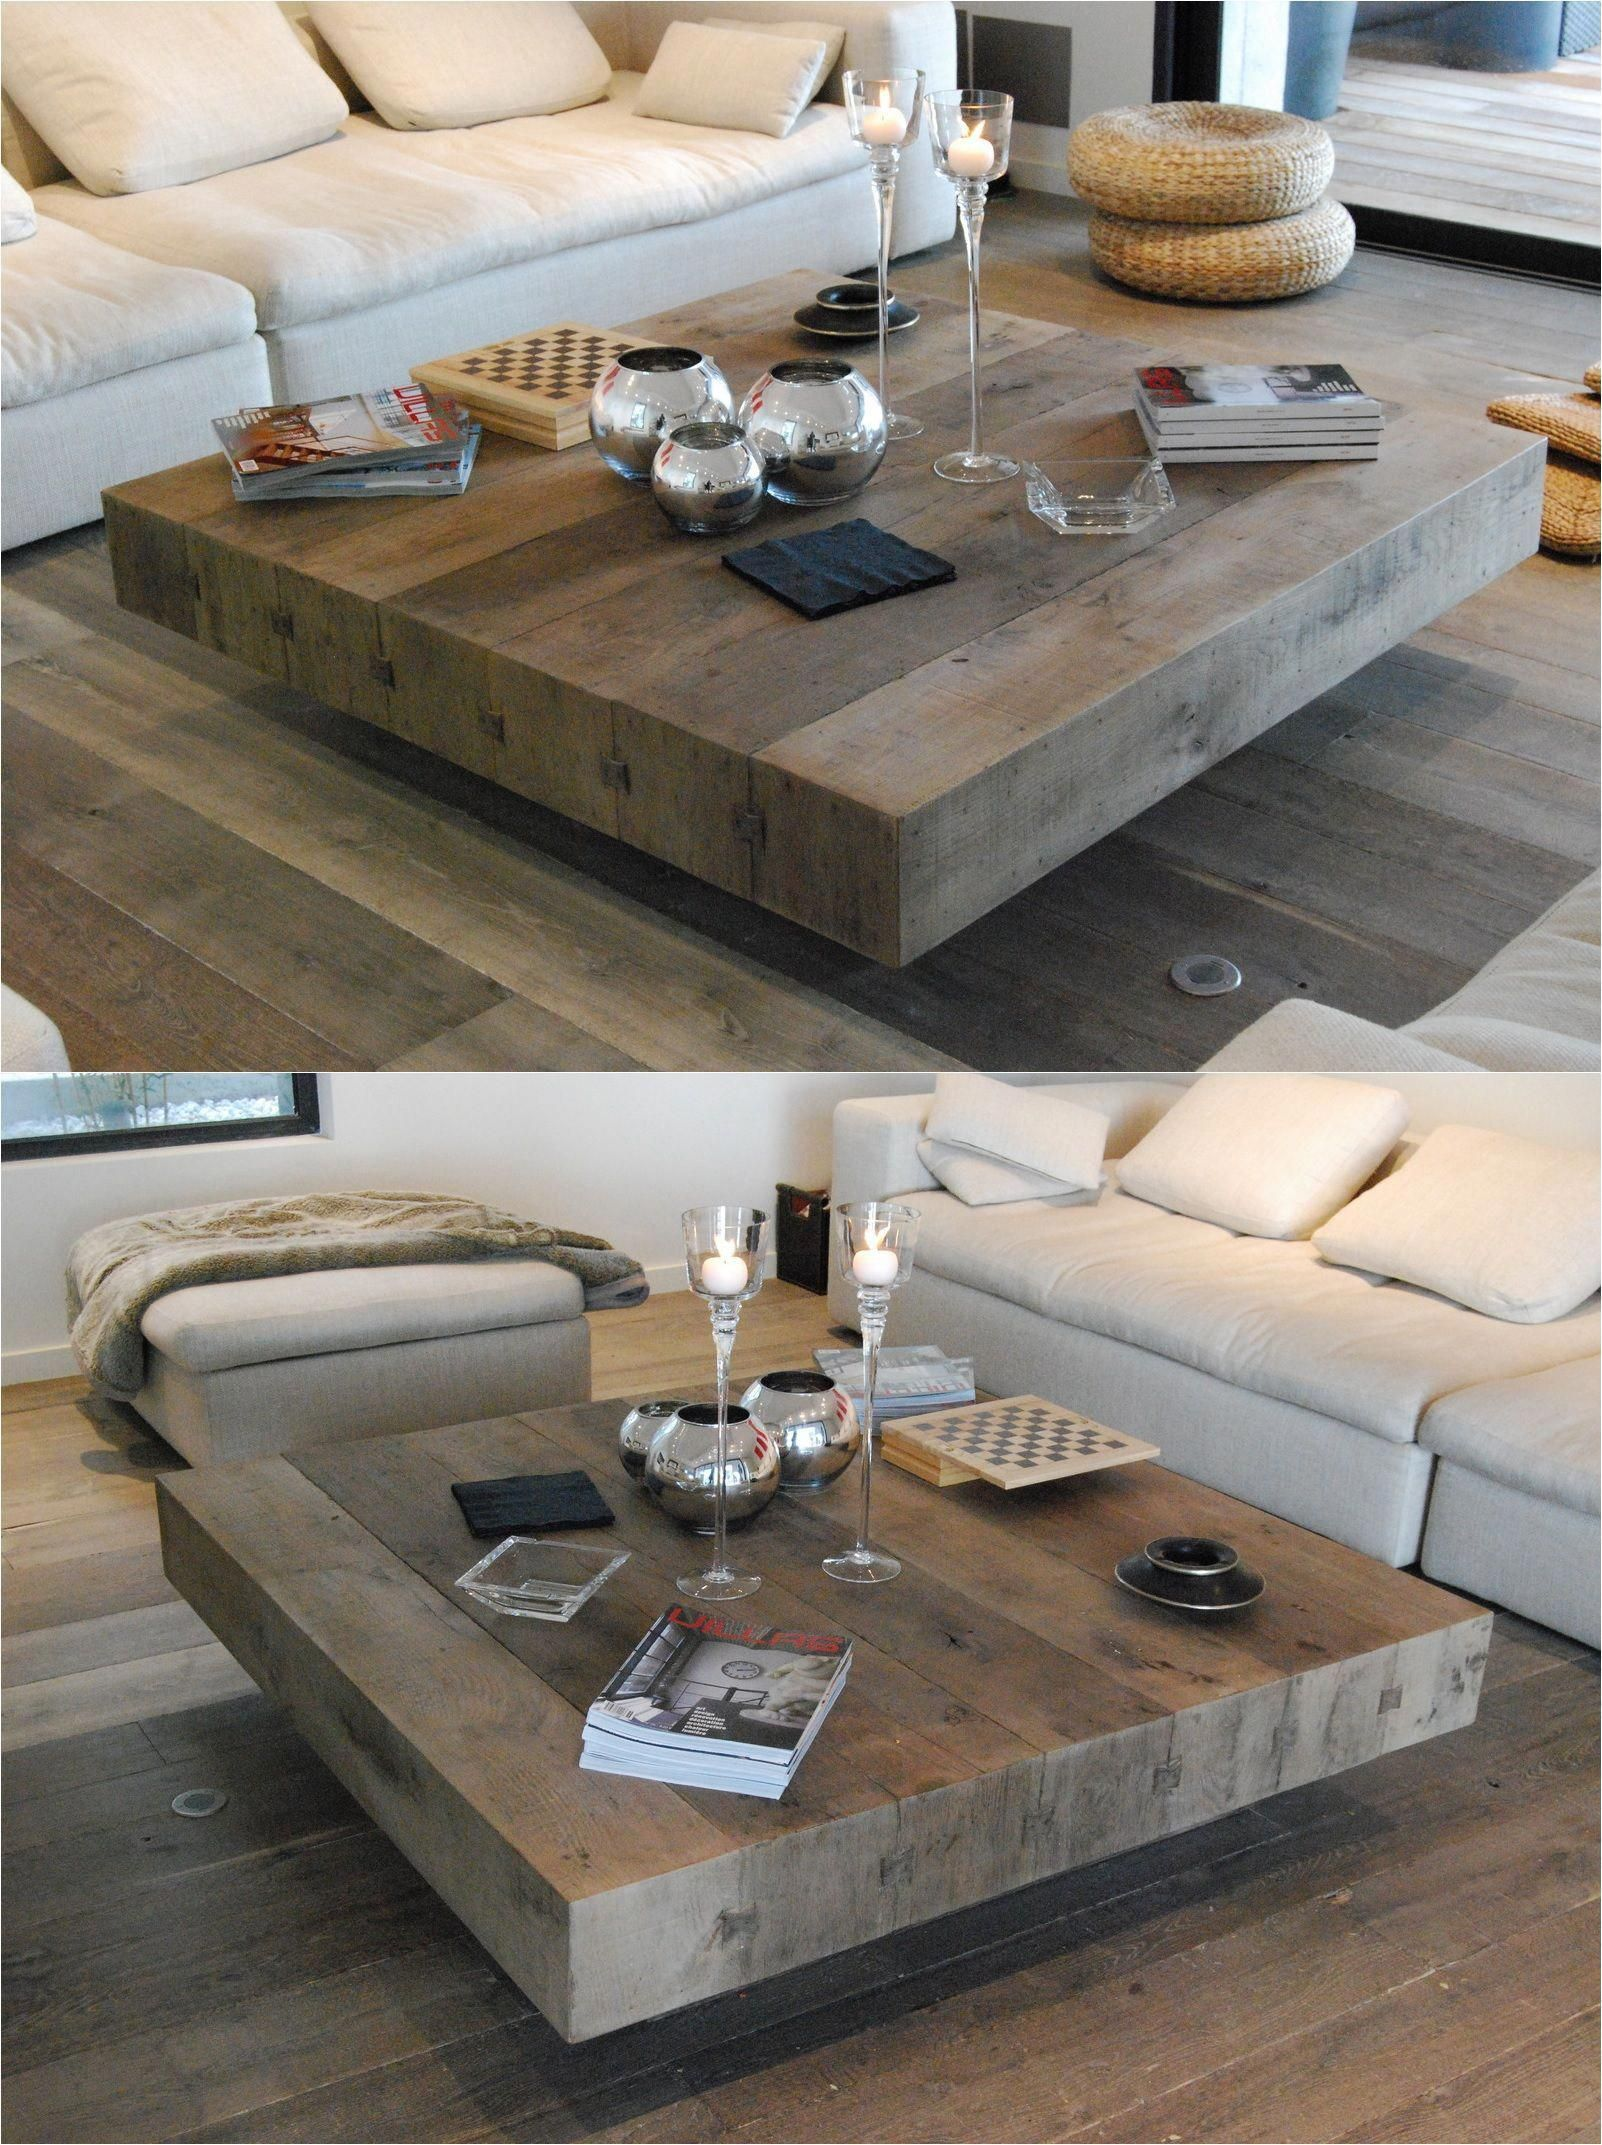 Extra Large Rustic Coffee Table Download Bonheur Wooden Handmade Square Coffee Table By Di R Square Wooden Coffee Table Rustic Coffee Tables Coffee Table Wood [ 2145 x 1602 Pixel ]